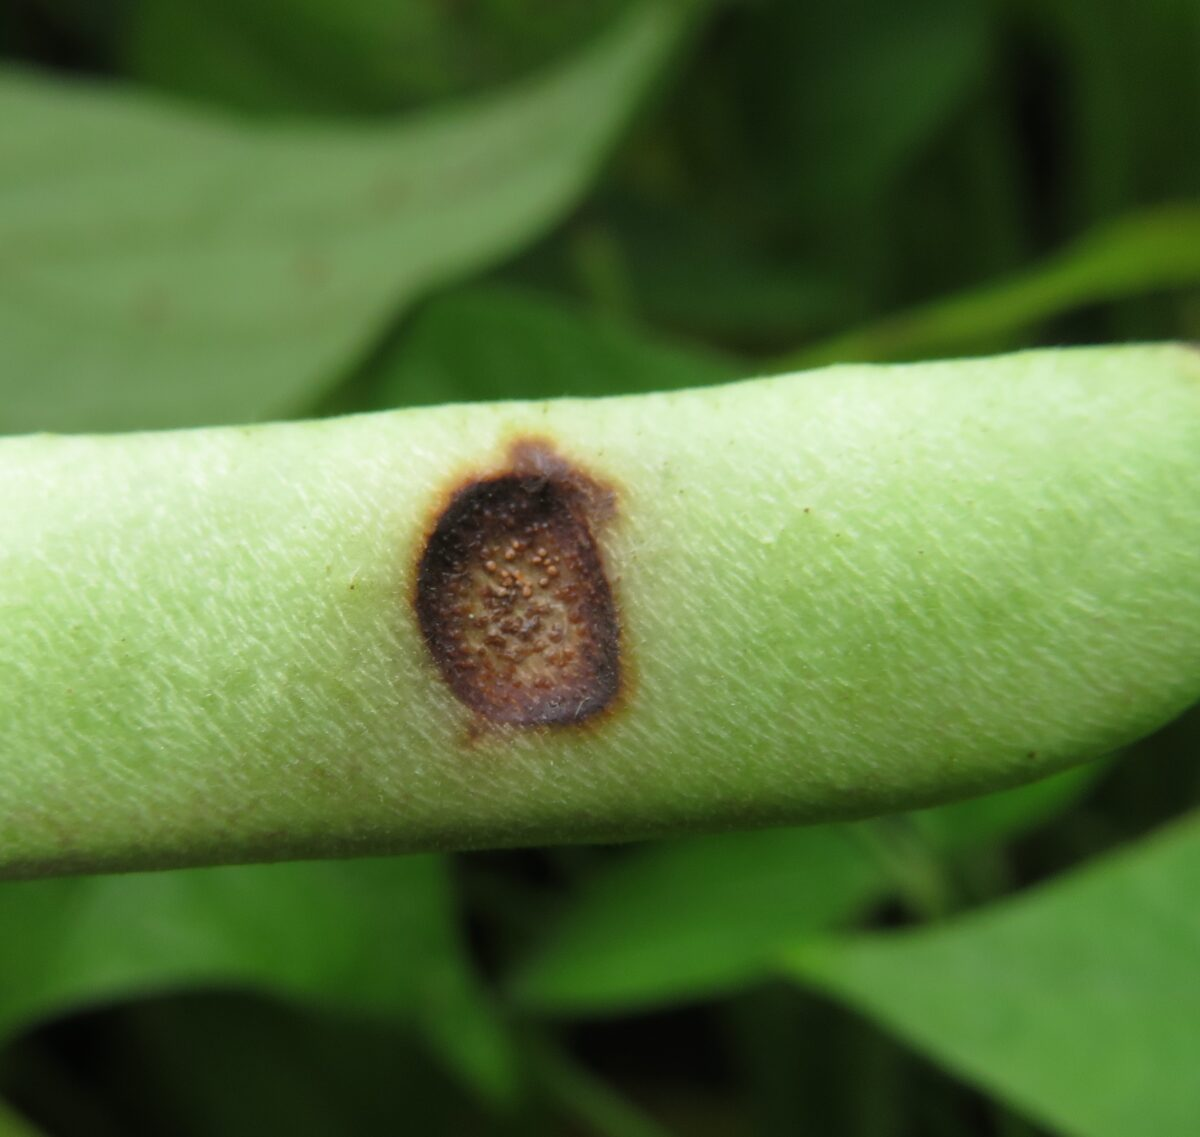 An anthracnose lesion on a dry bean pod in which the lesion has a dark brown ring surrounding a lighter brown area with many tiny brown-orange circles close together